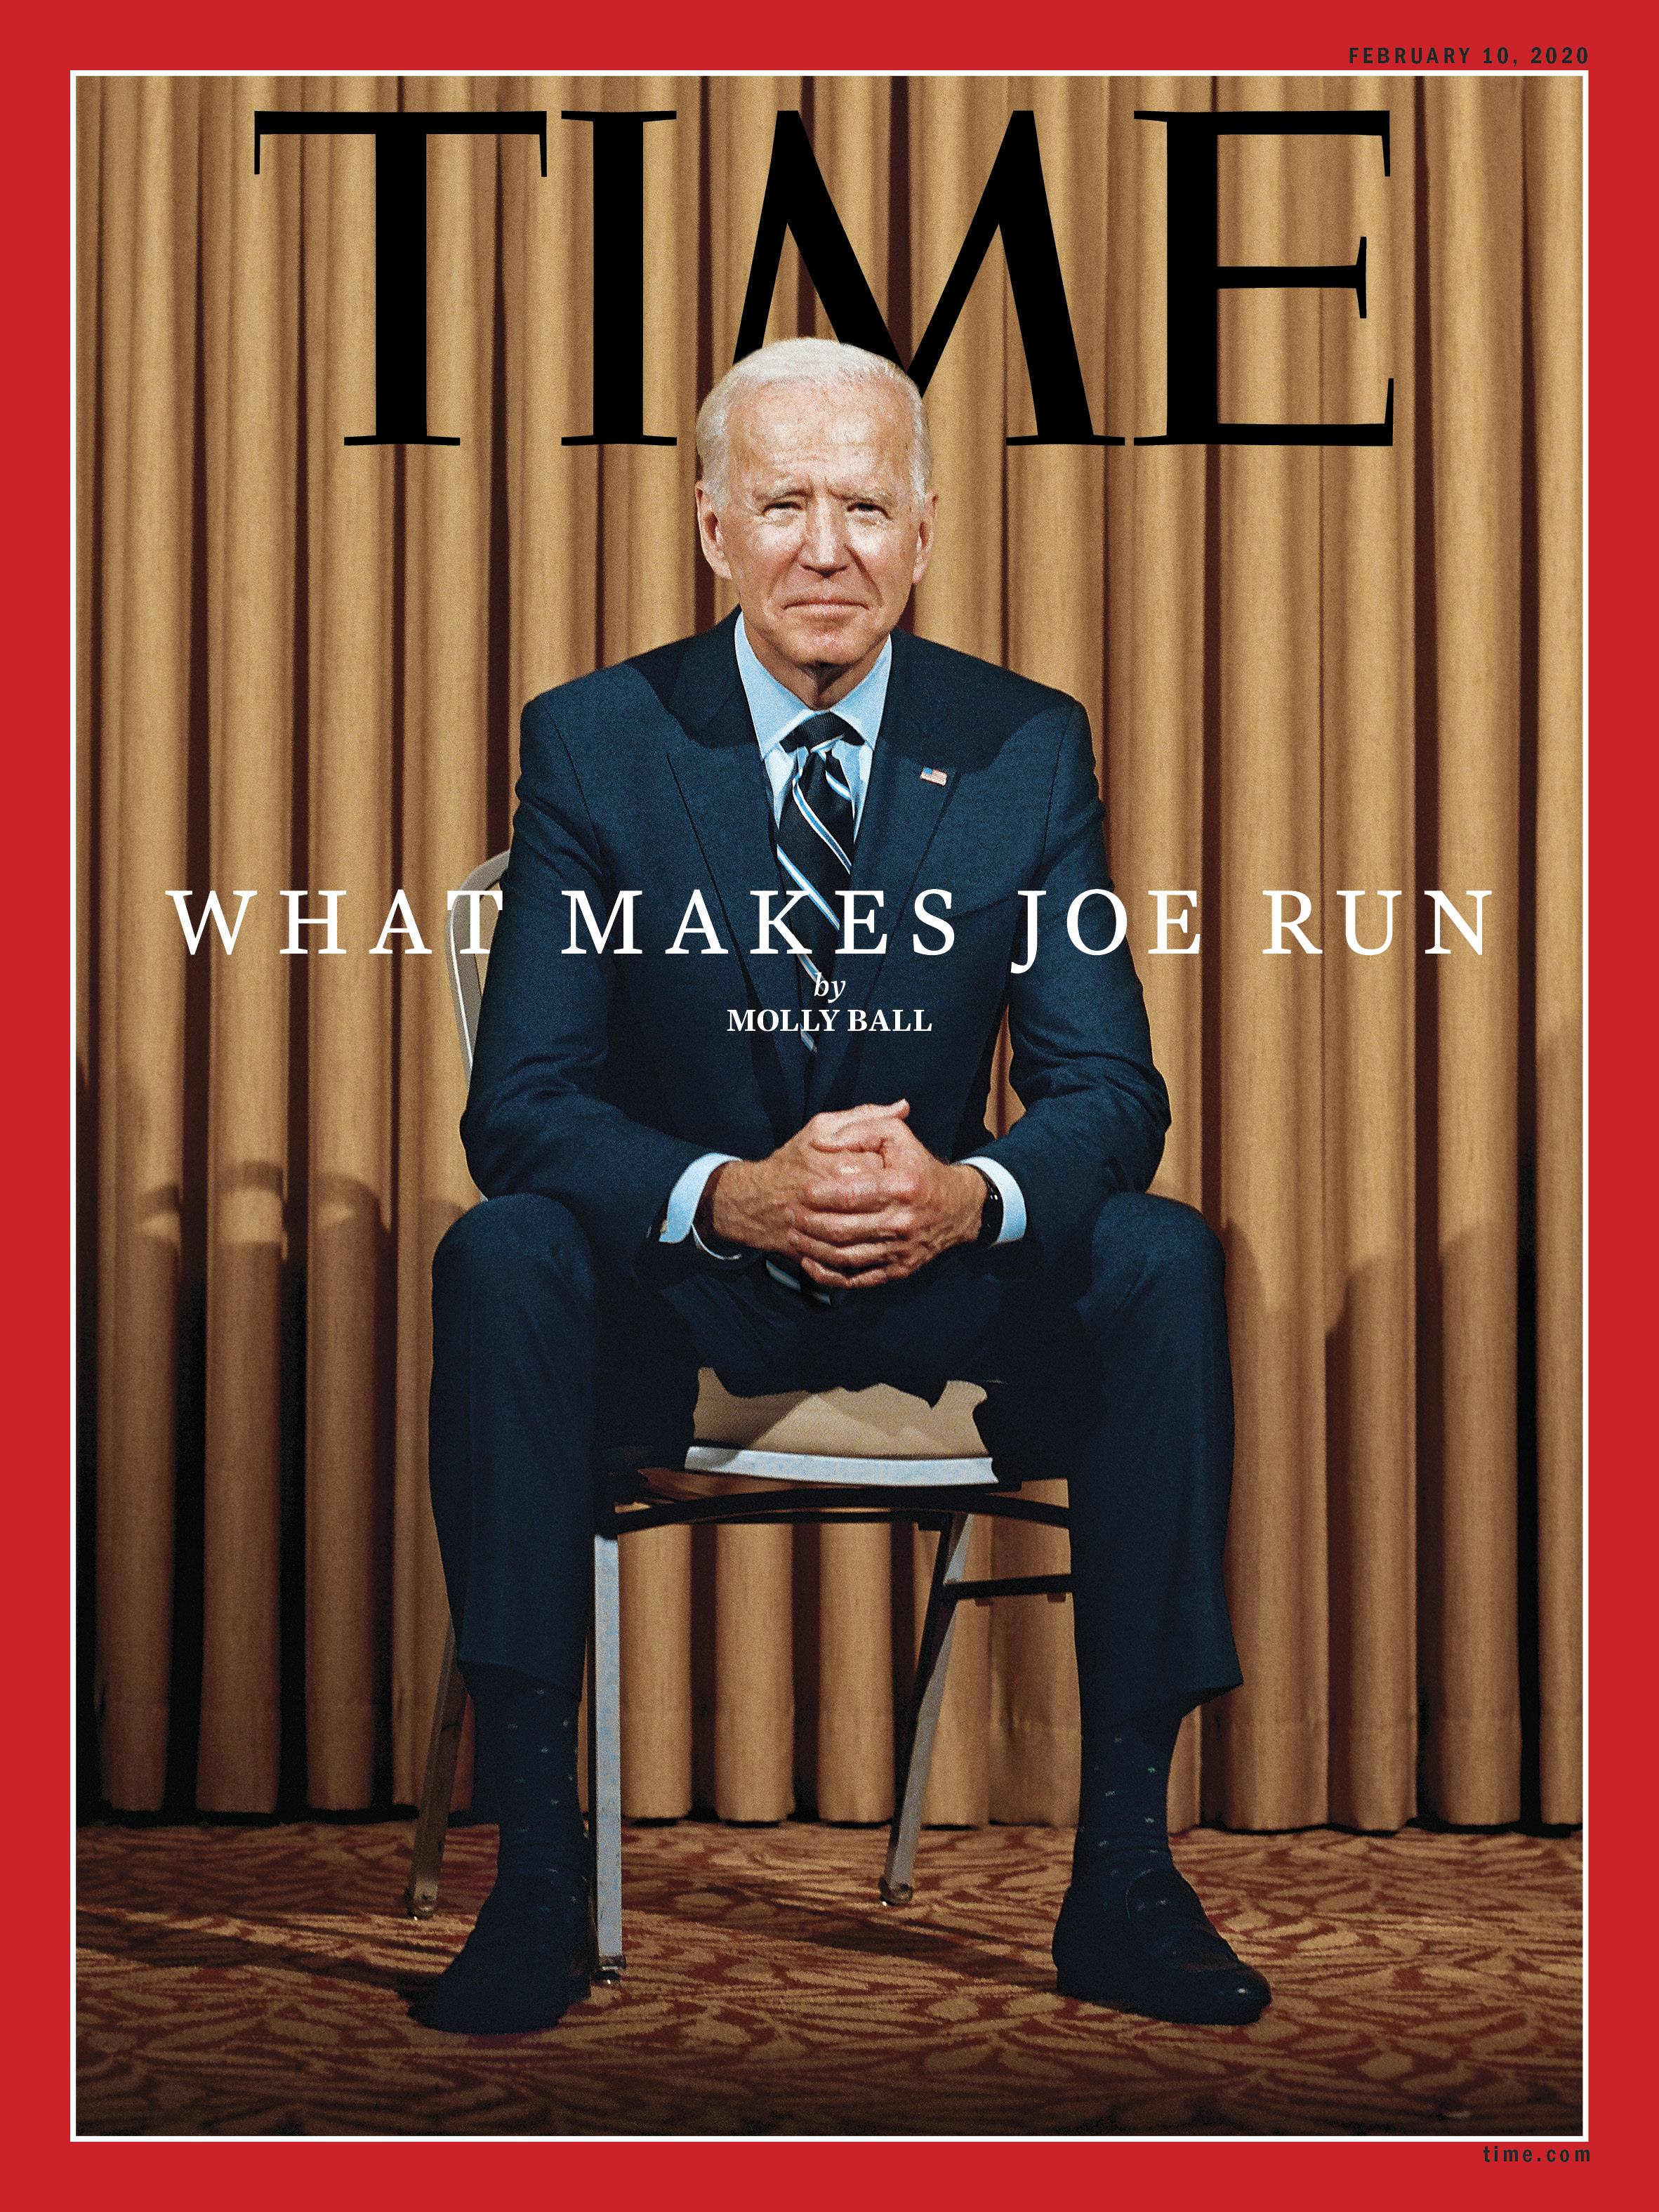 You Ve Got To Have Purpose Joe Biden S 2020 Campaign Is The Latest Test In A Lifetime Of Loss Time